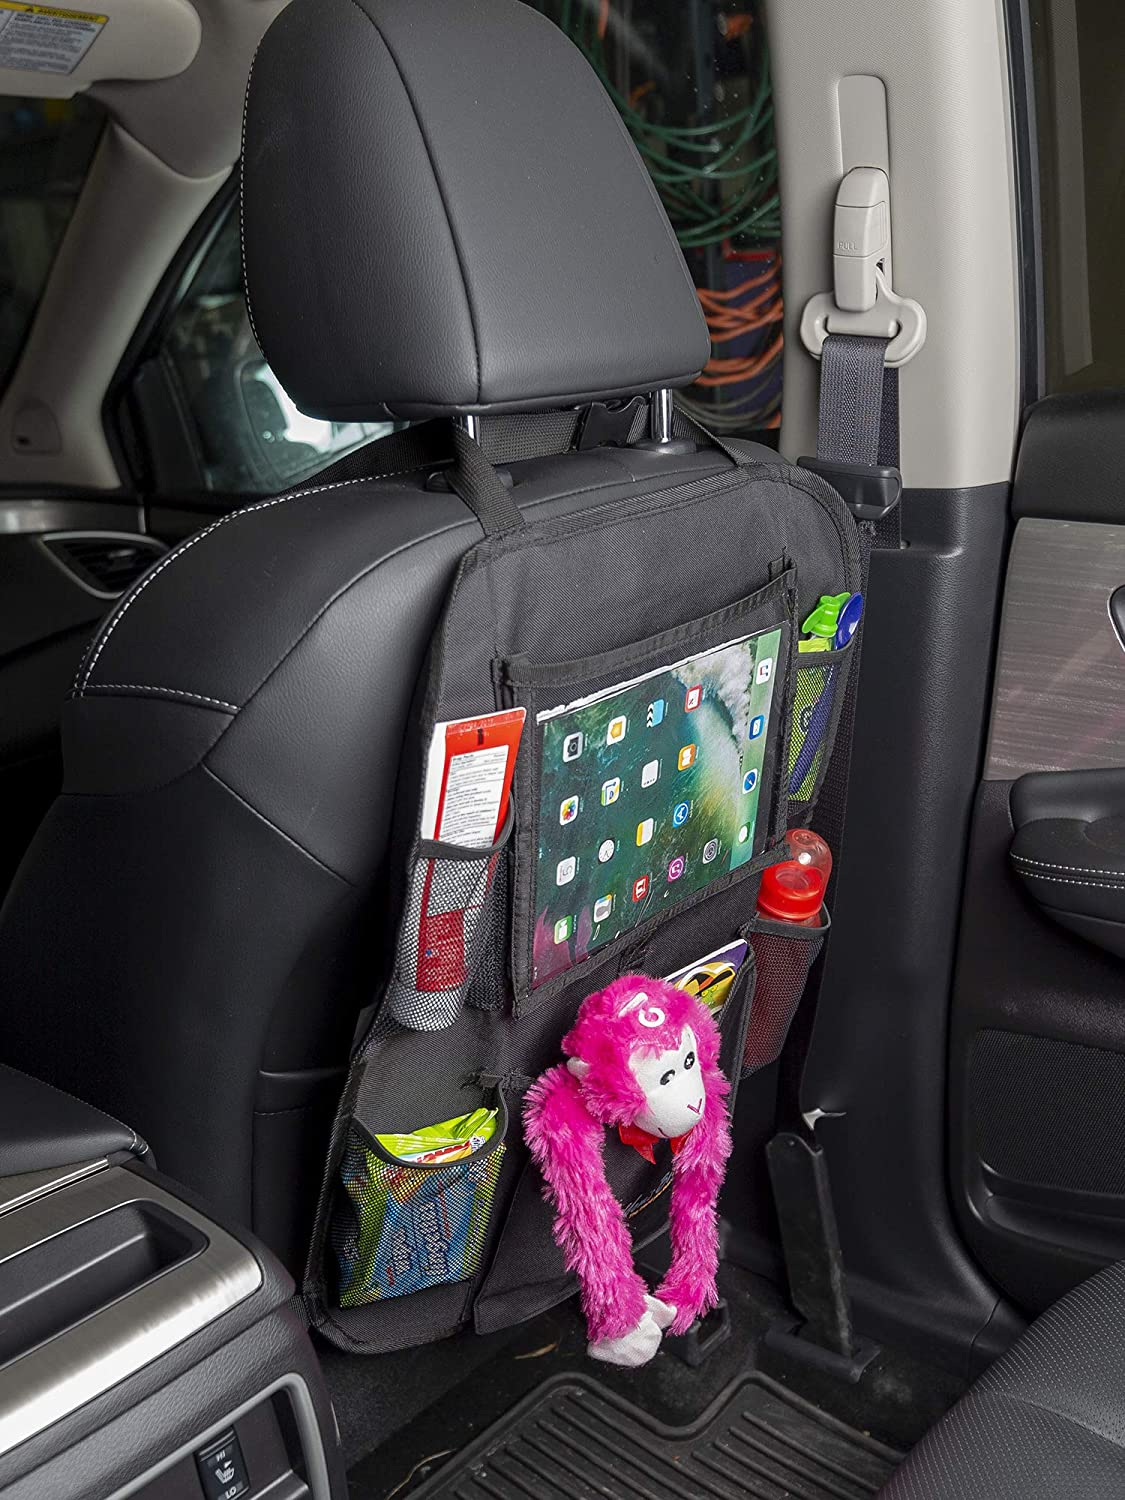 Car Organizer Tideland Products CAR1 5 Pockets Multipurpose Car Back Seat Organizer for Kids and Toddlers by Tidelands Kick Mat Touch Screen Tablet Holder for Android /& iOS